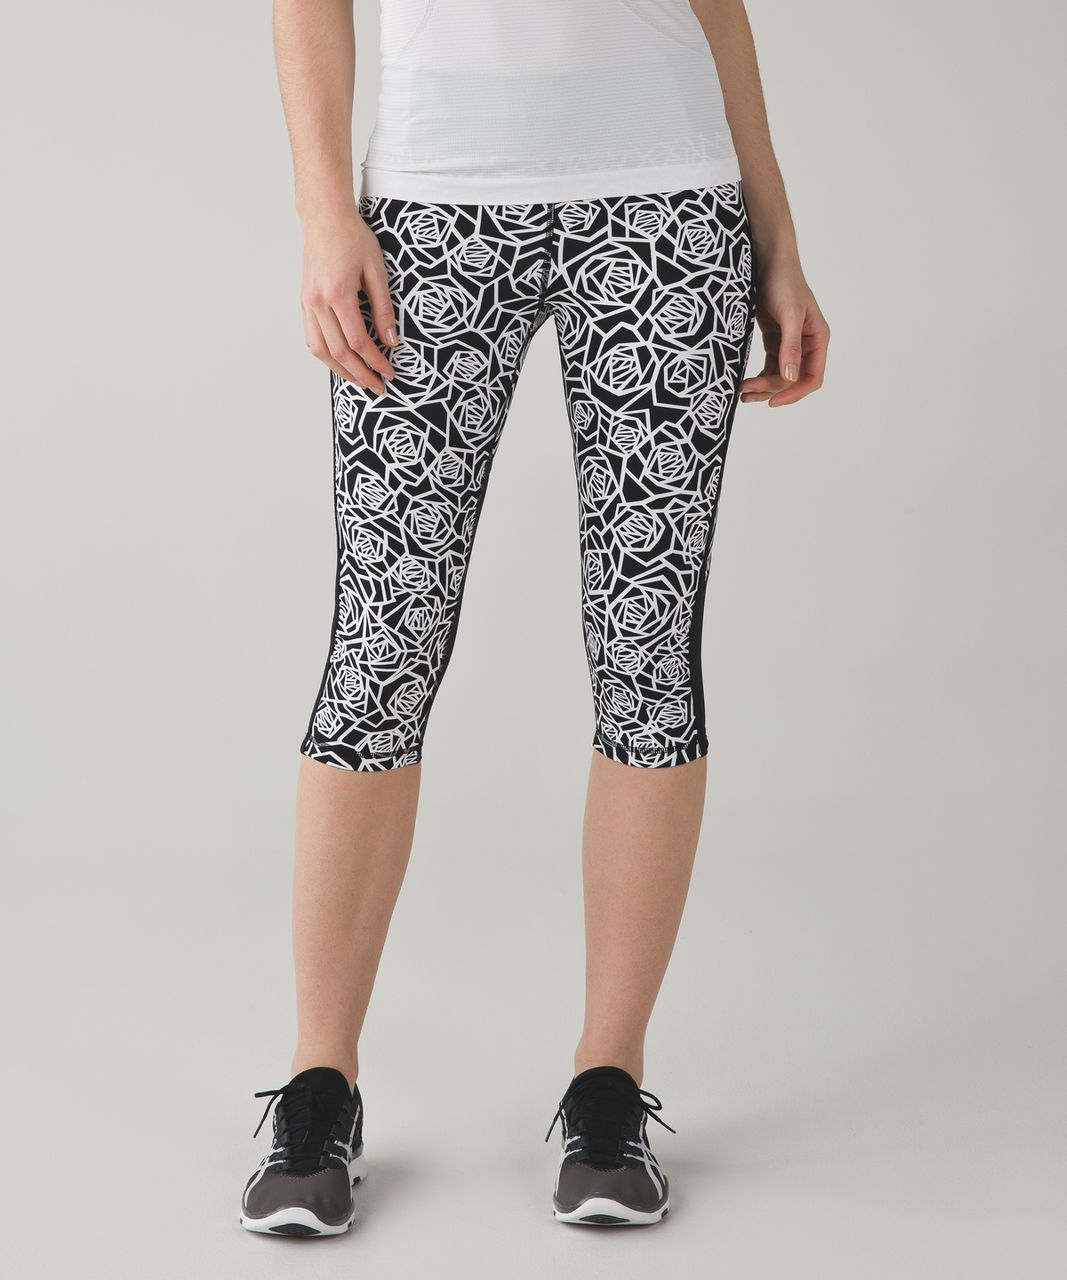 Lululemon Real Quick Crop *Full-On Luxtreme - Posey Black White / Black